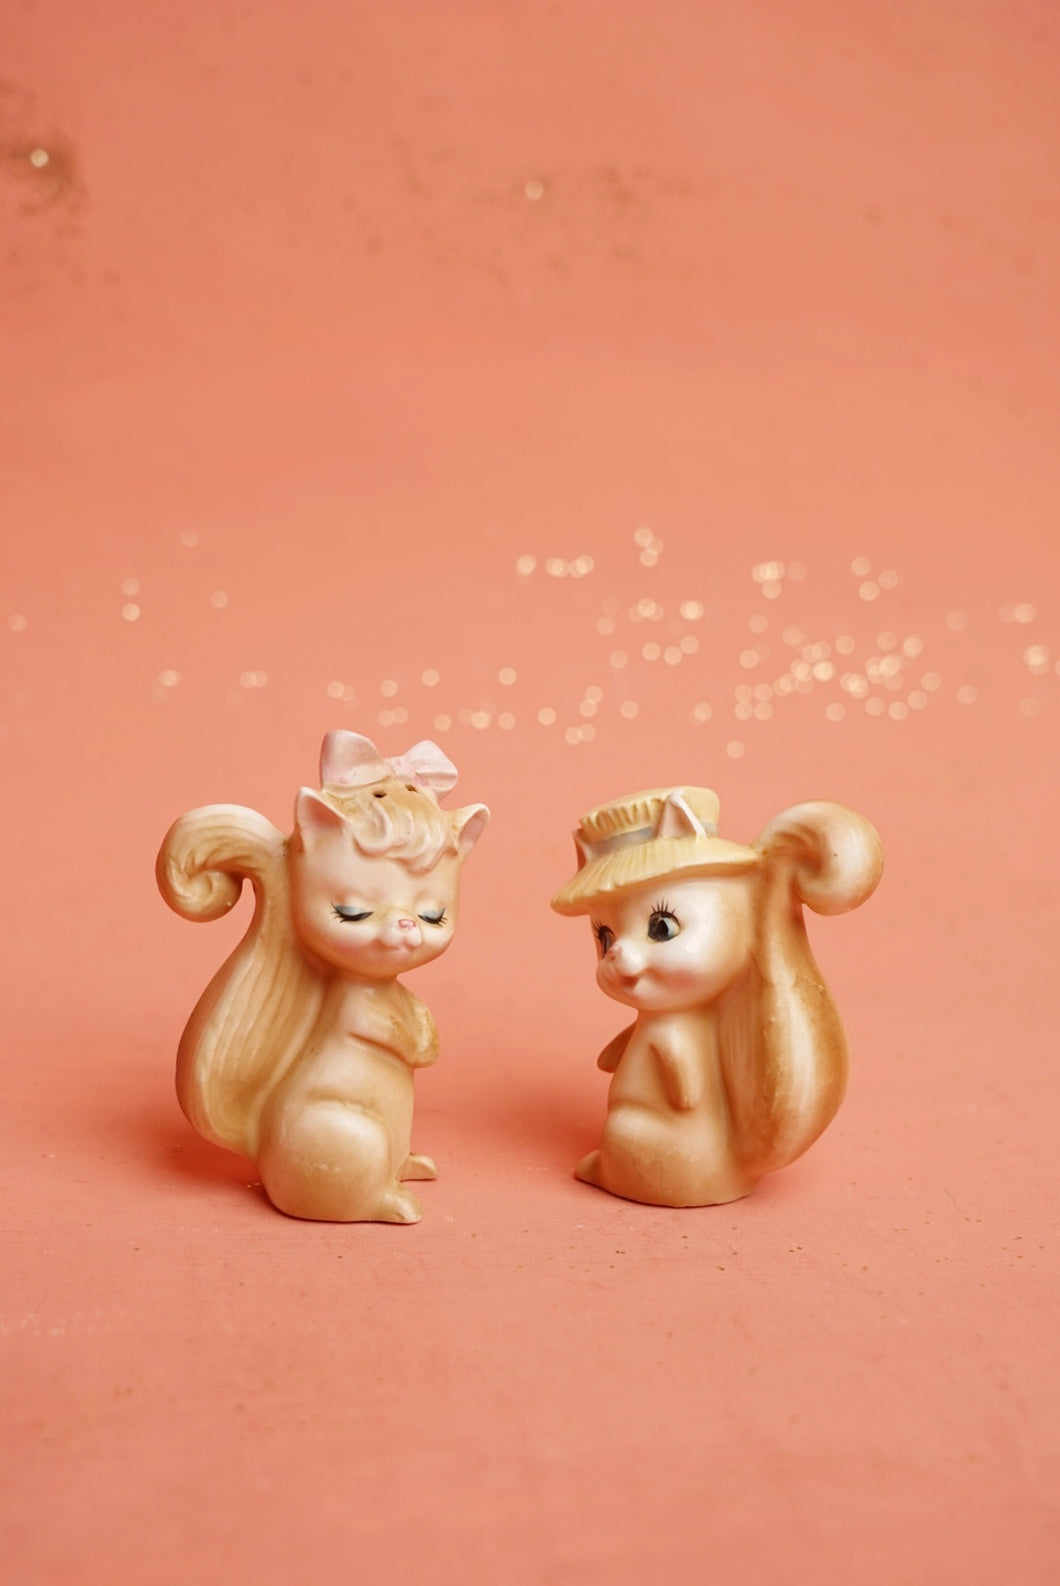 Squirrel S&P Shakers